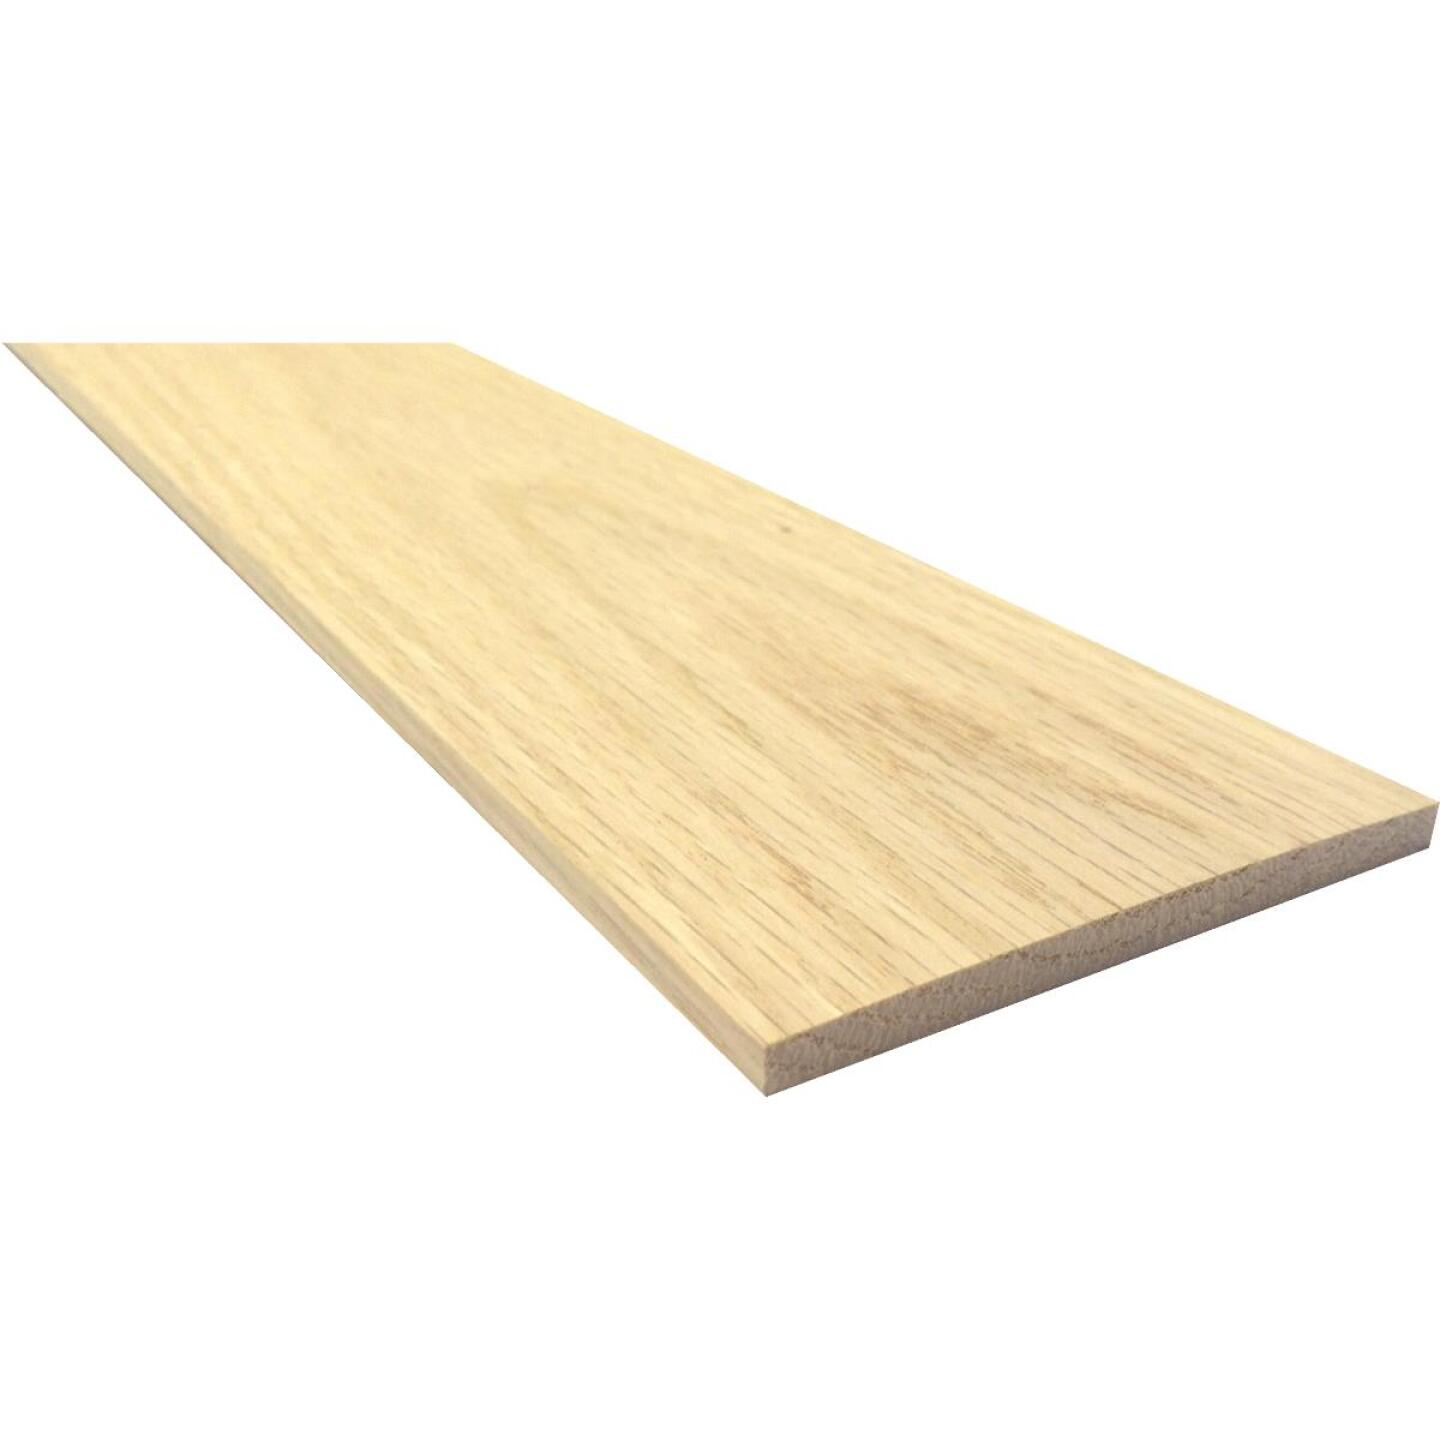 Waddell 1/4 In. x 6 In. x 2 Ft. Red Oak Board Image 1